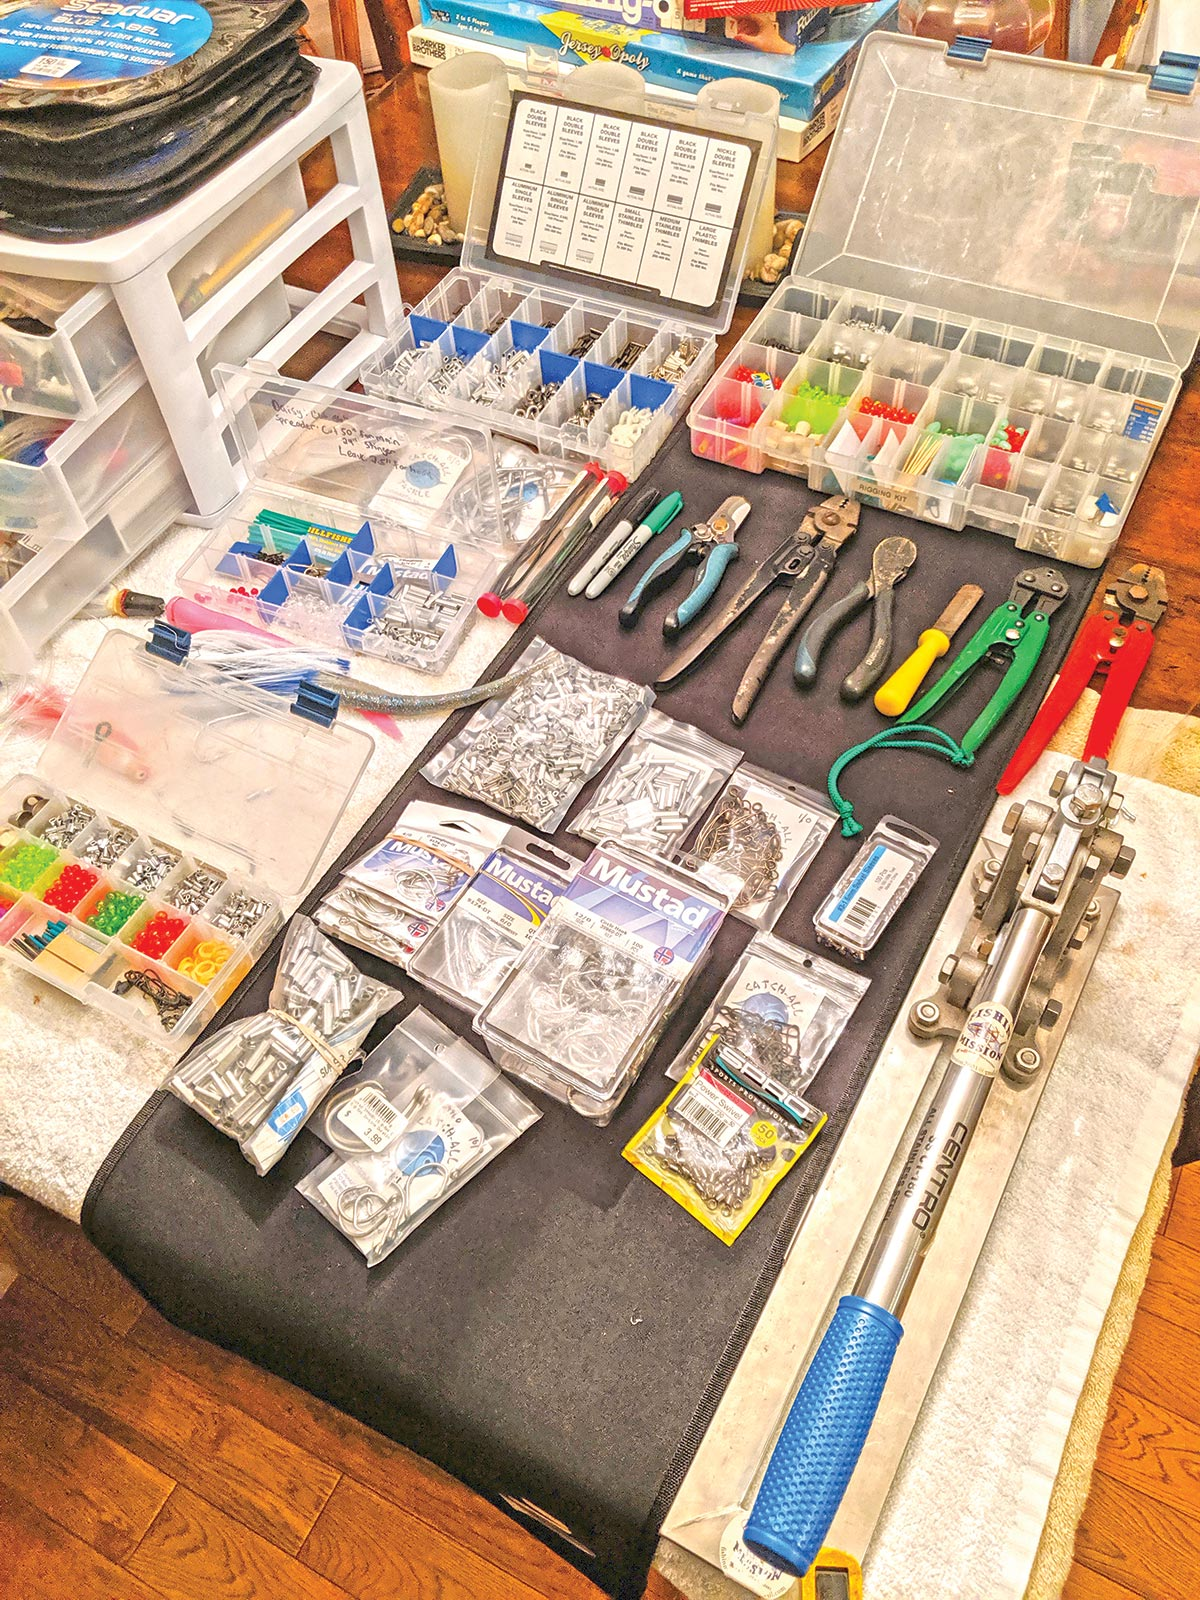 Organized rigging kits are essential to making sure you have the proper gear